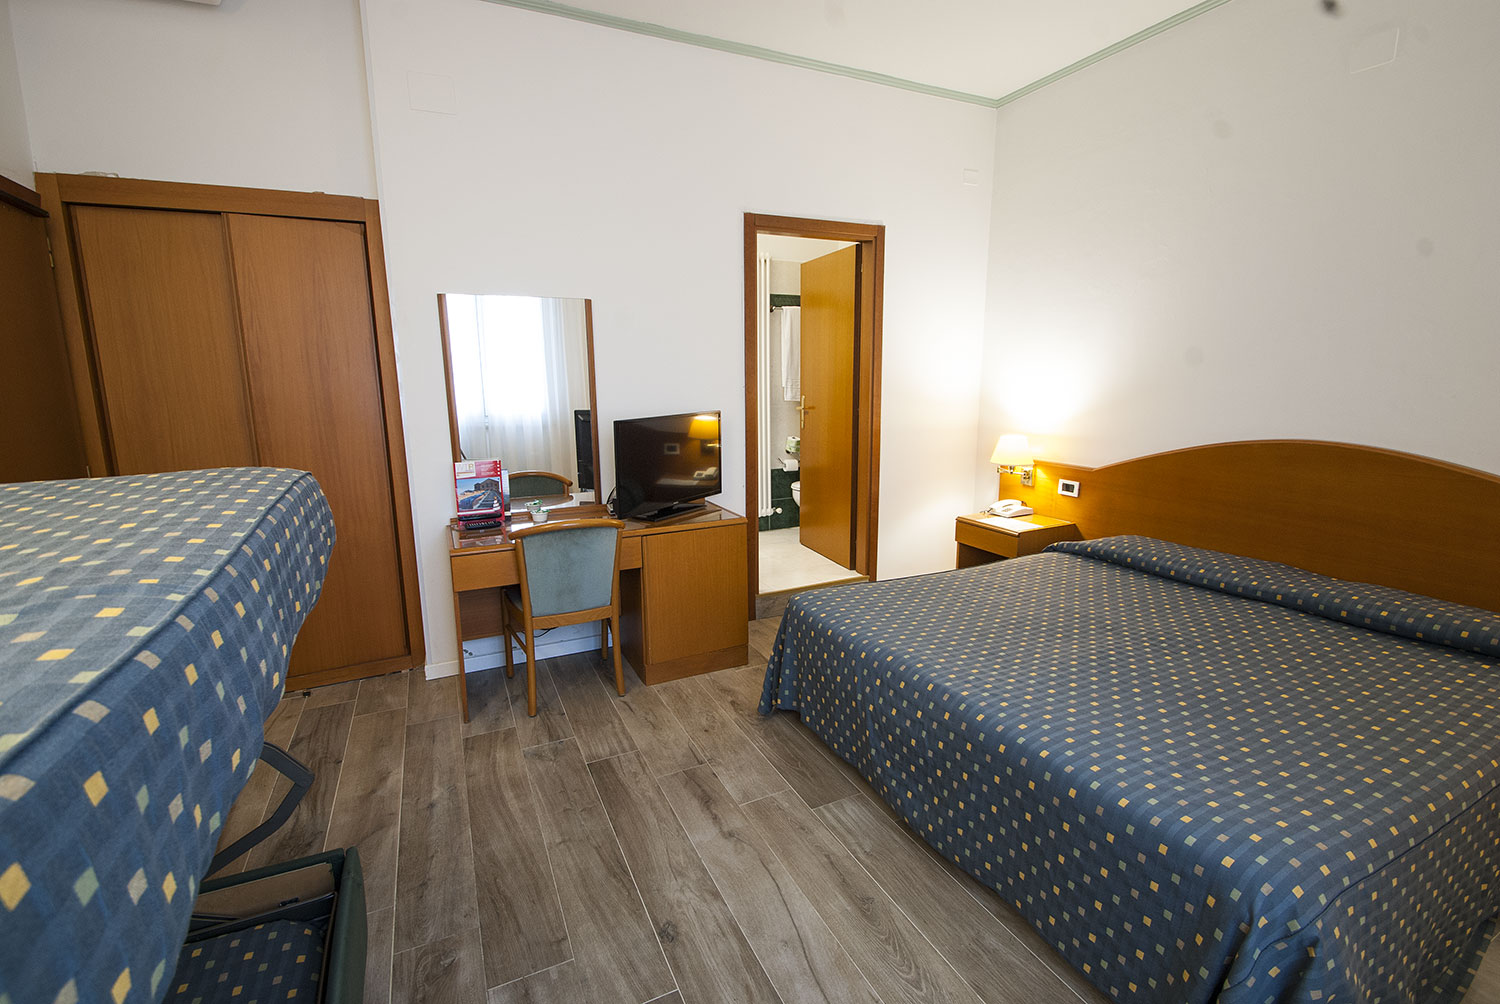 Camera Quadrupla con letto a castello